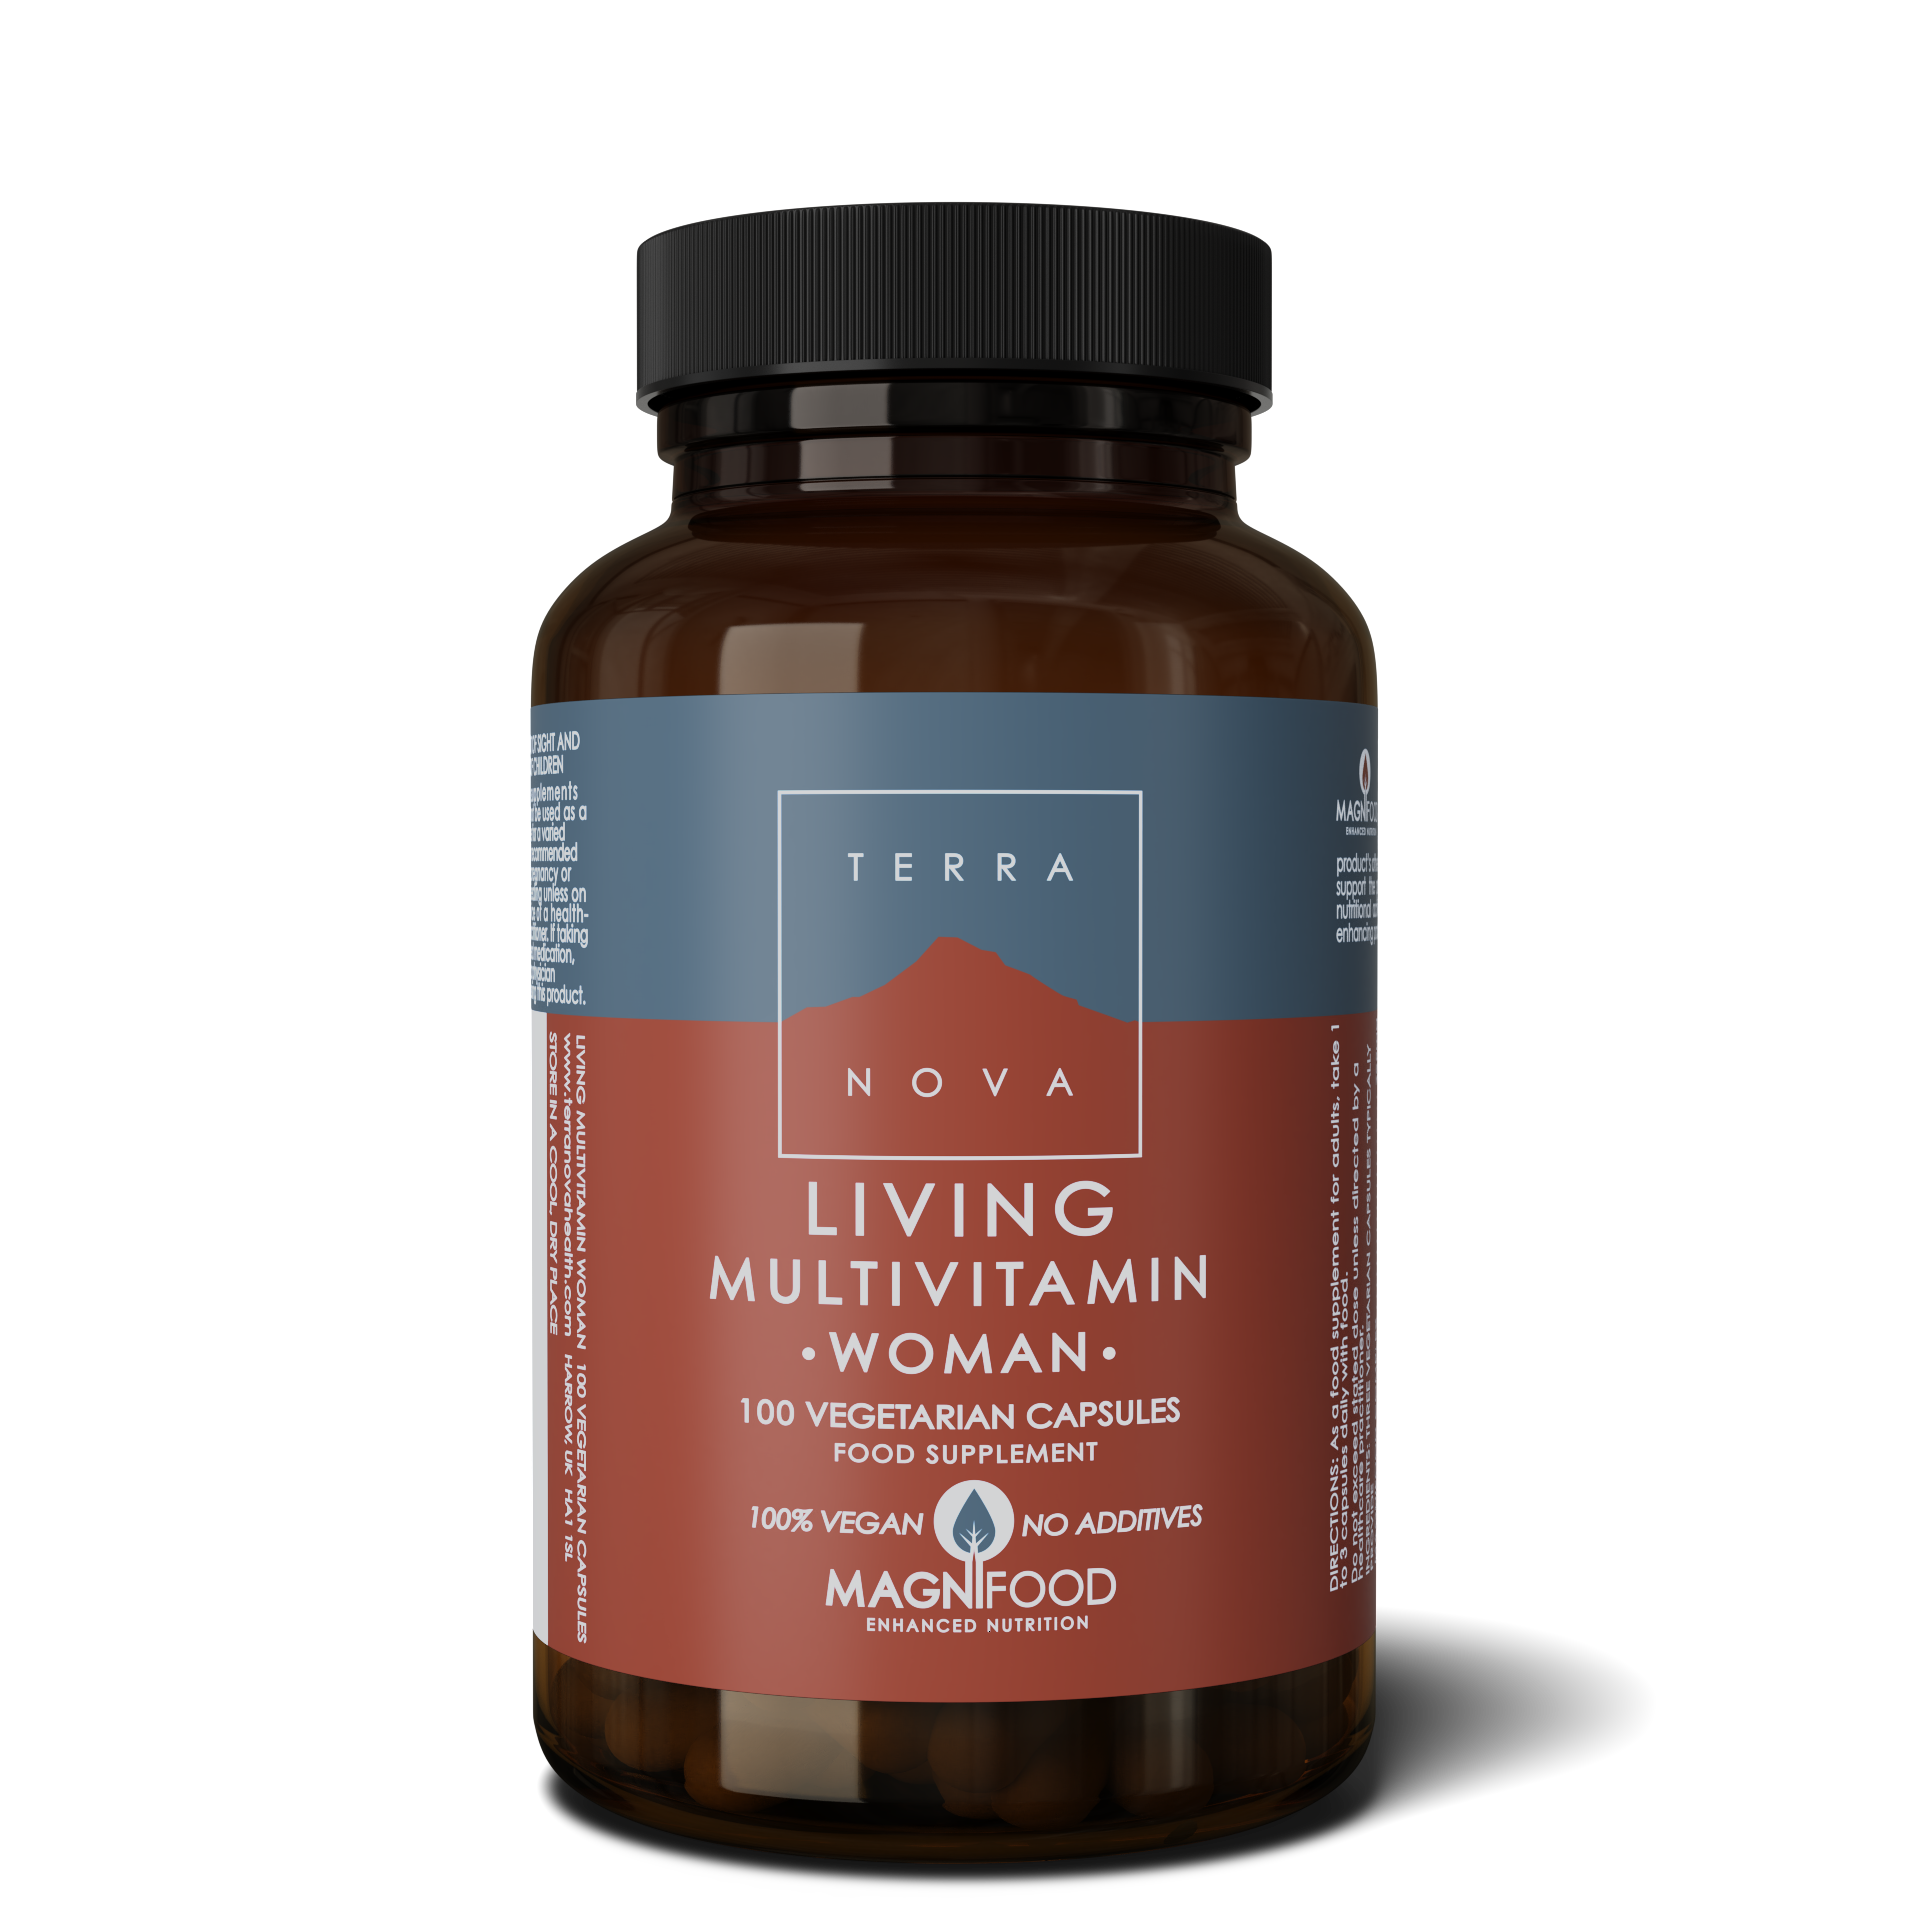 Living Multivitamin WOMAN 100 kaps, Terranova (Vegan)